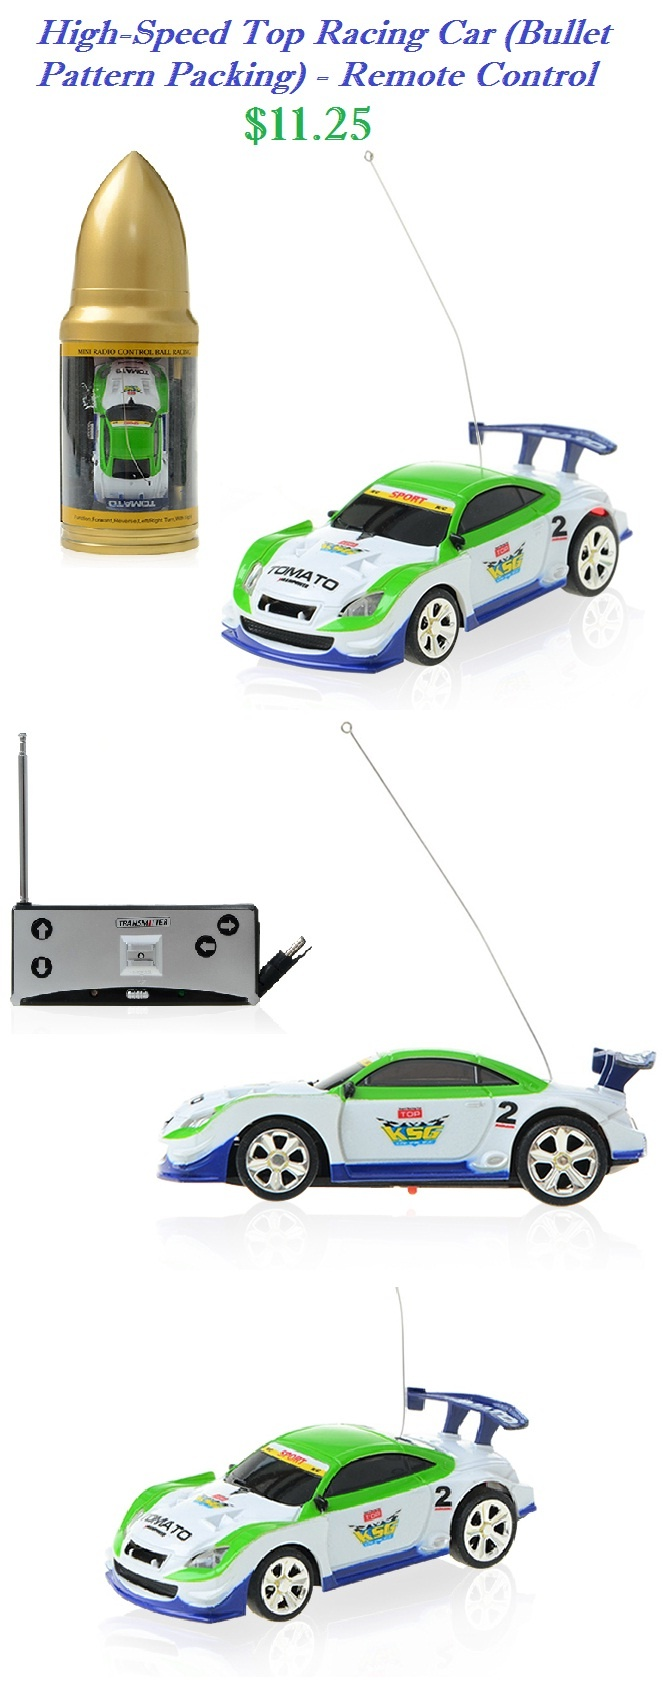 RC TOYS - High-Speed Top Racing Car (Bullet Pattern Packing) - Remote Control - Green #rctoys #racing #car #remote #control $11.25